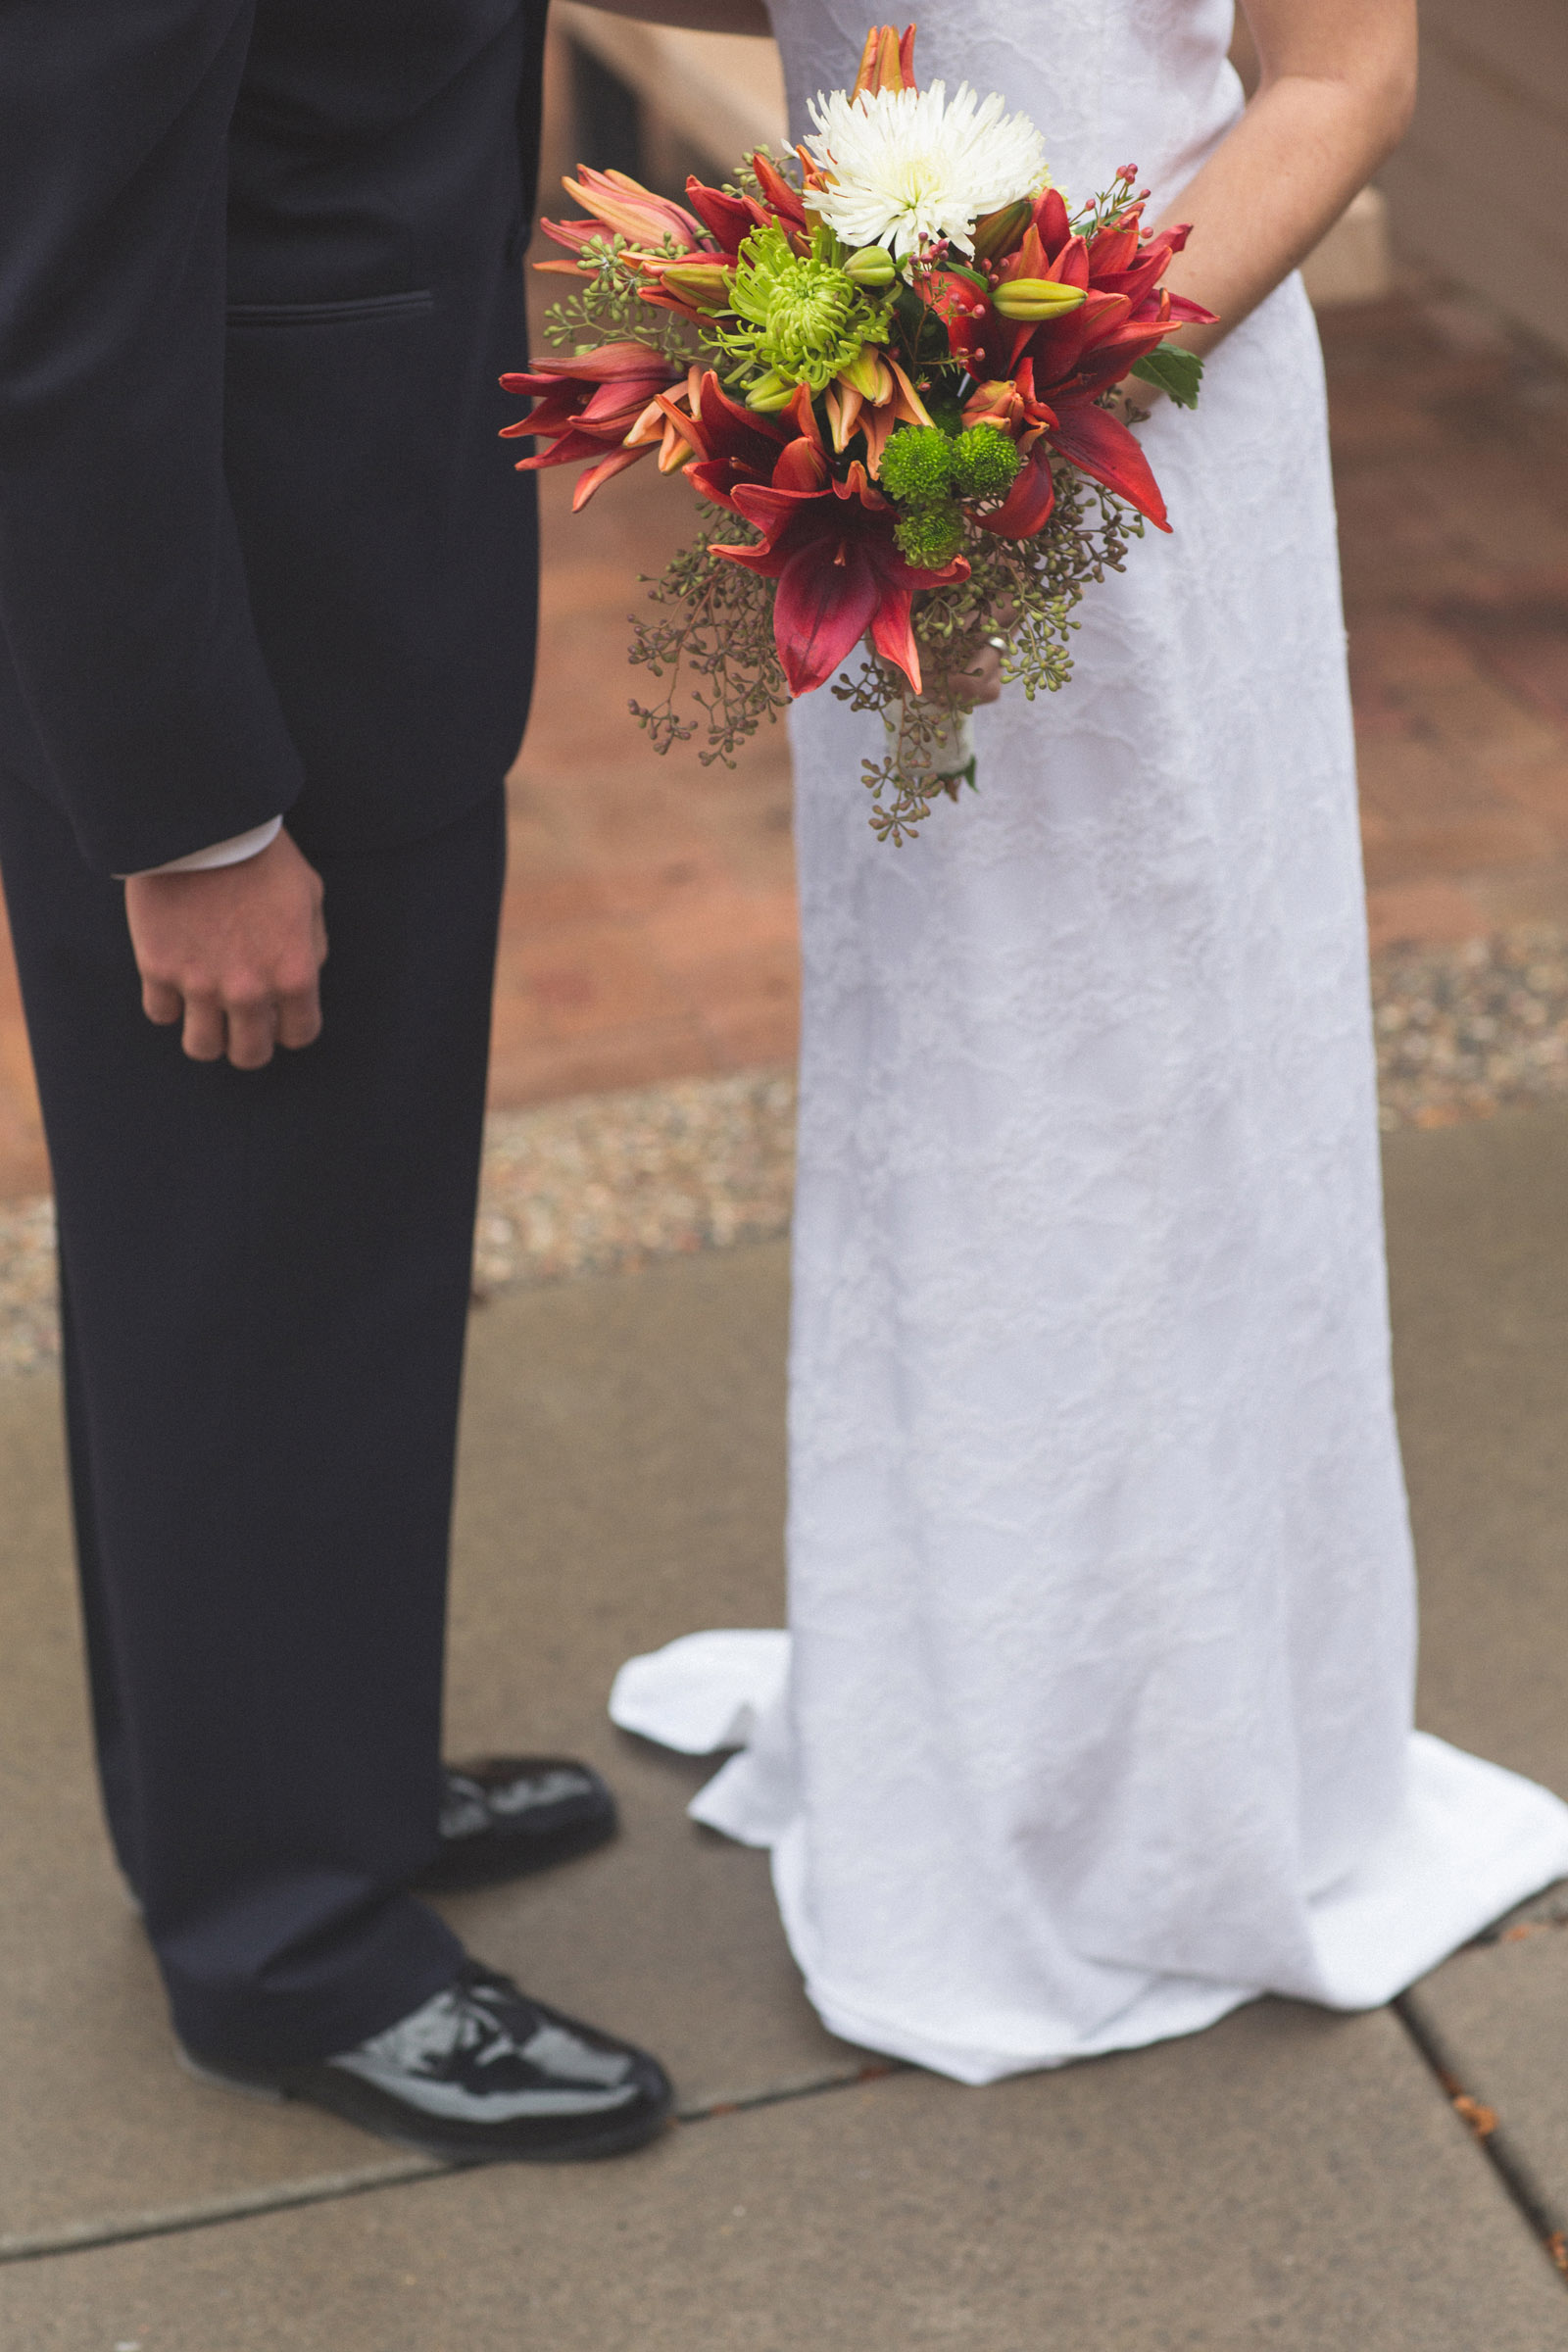 056-bride-and-groom-see-eachother-in-first-look-in-courtyard-before-the-ceremony-in-albuquerque-nm